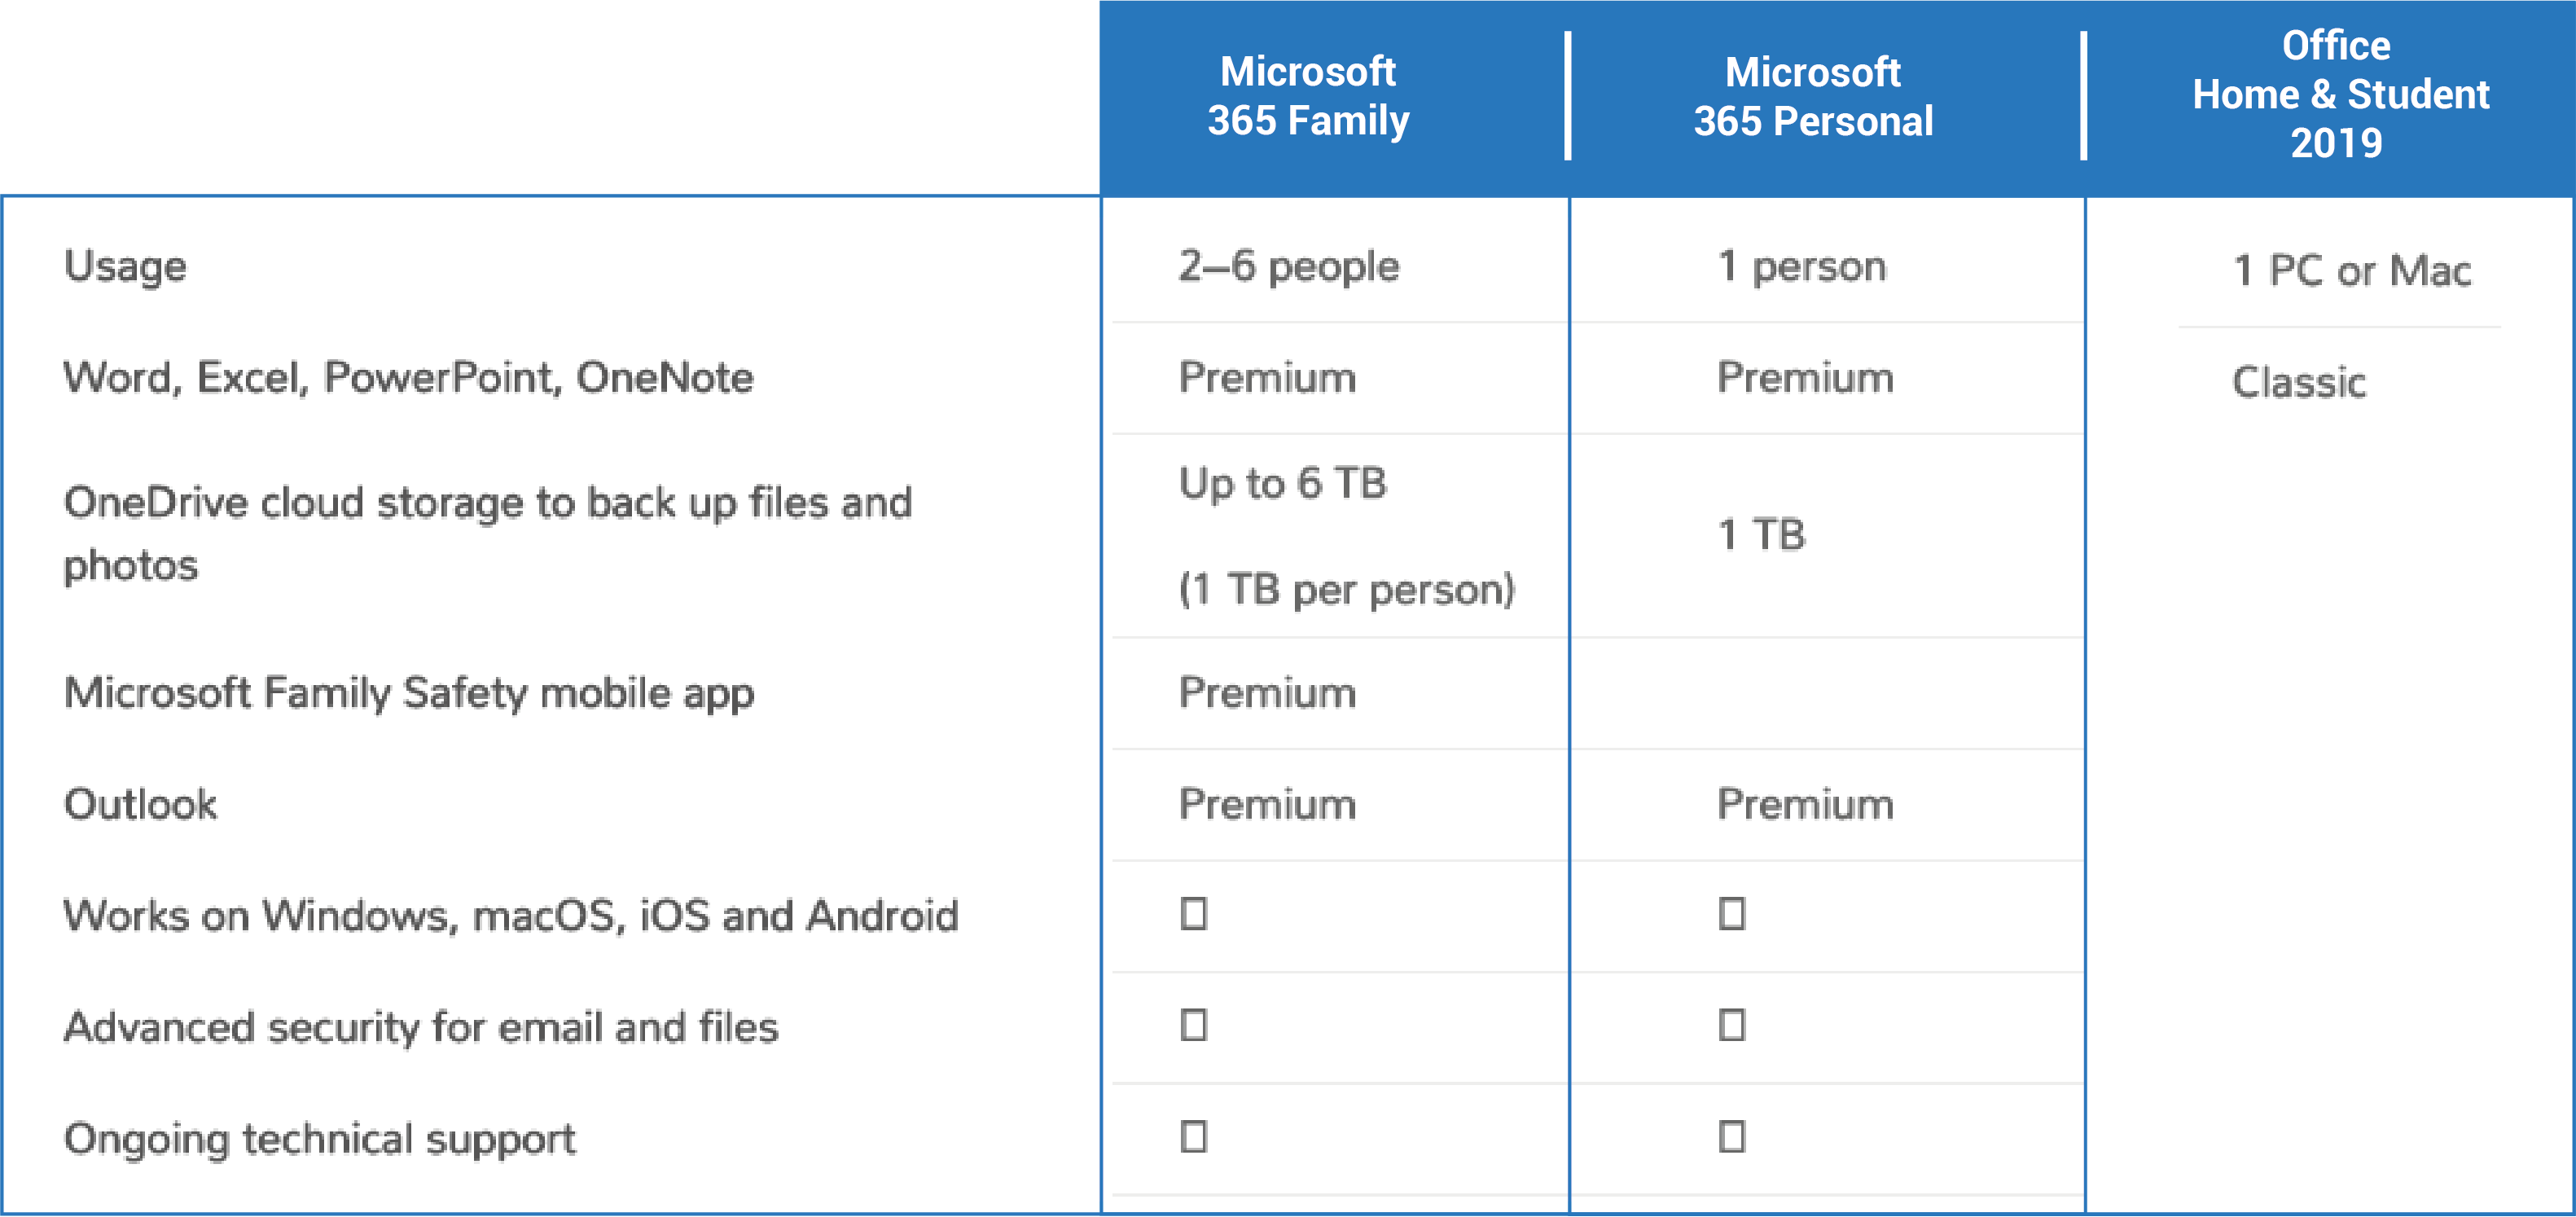 Compare Microsoft 365 with office, whats better?